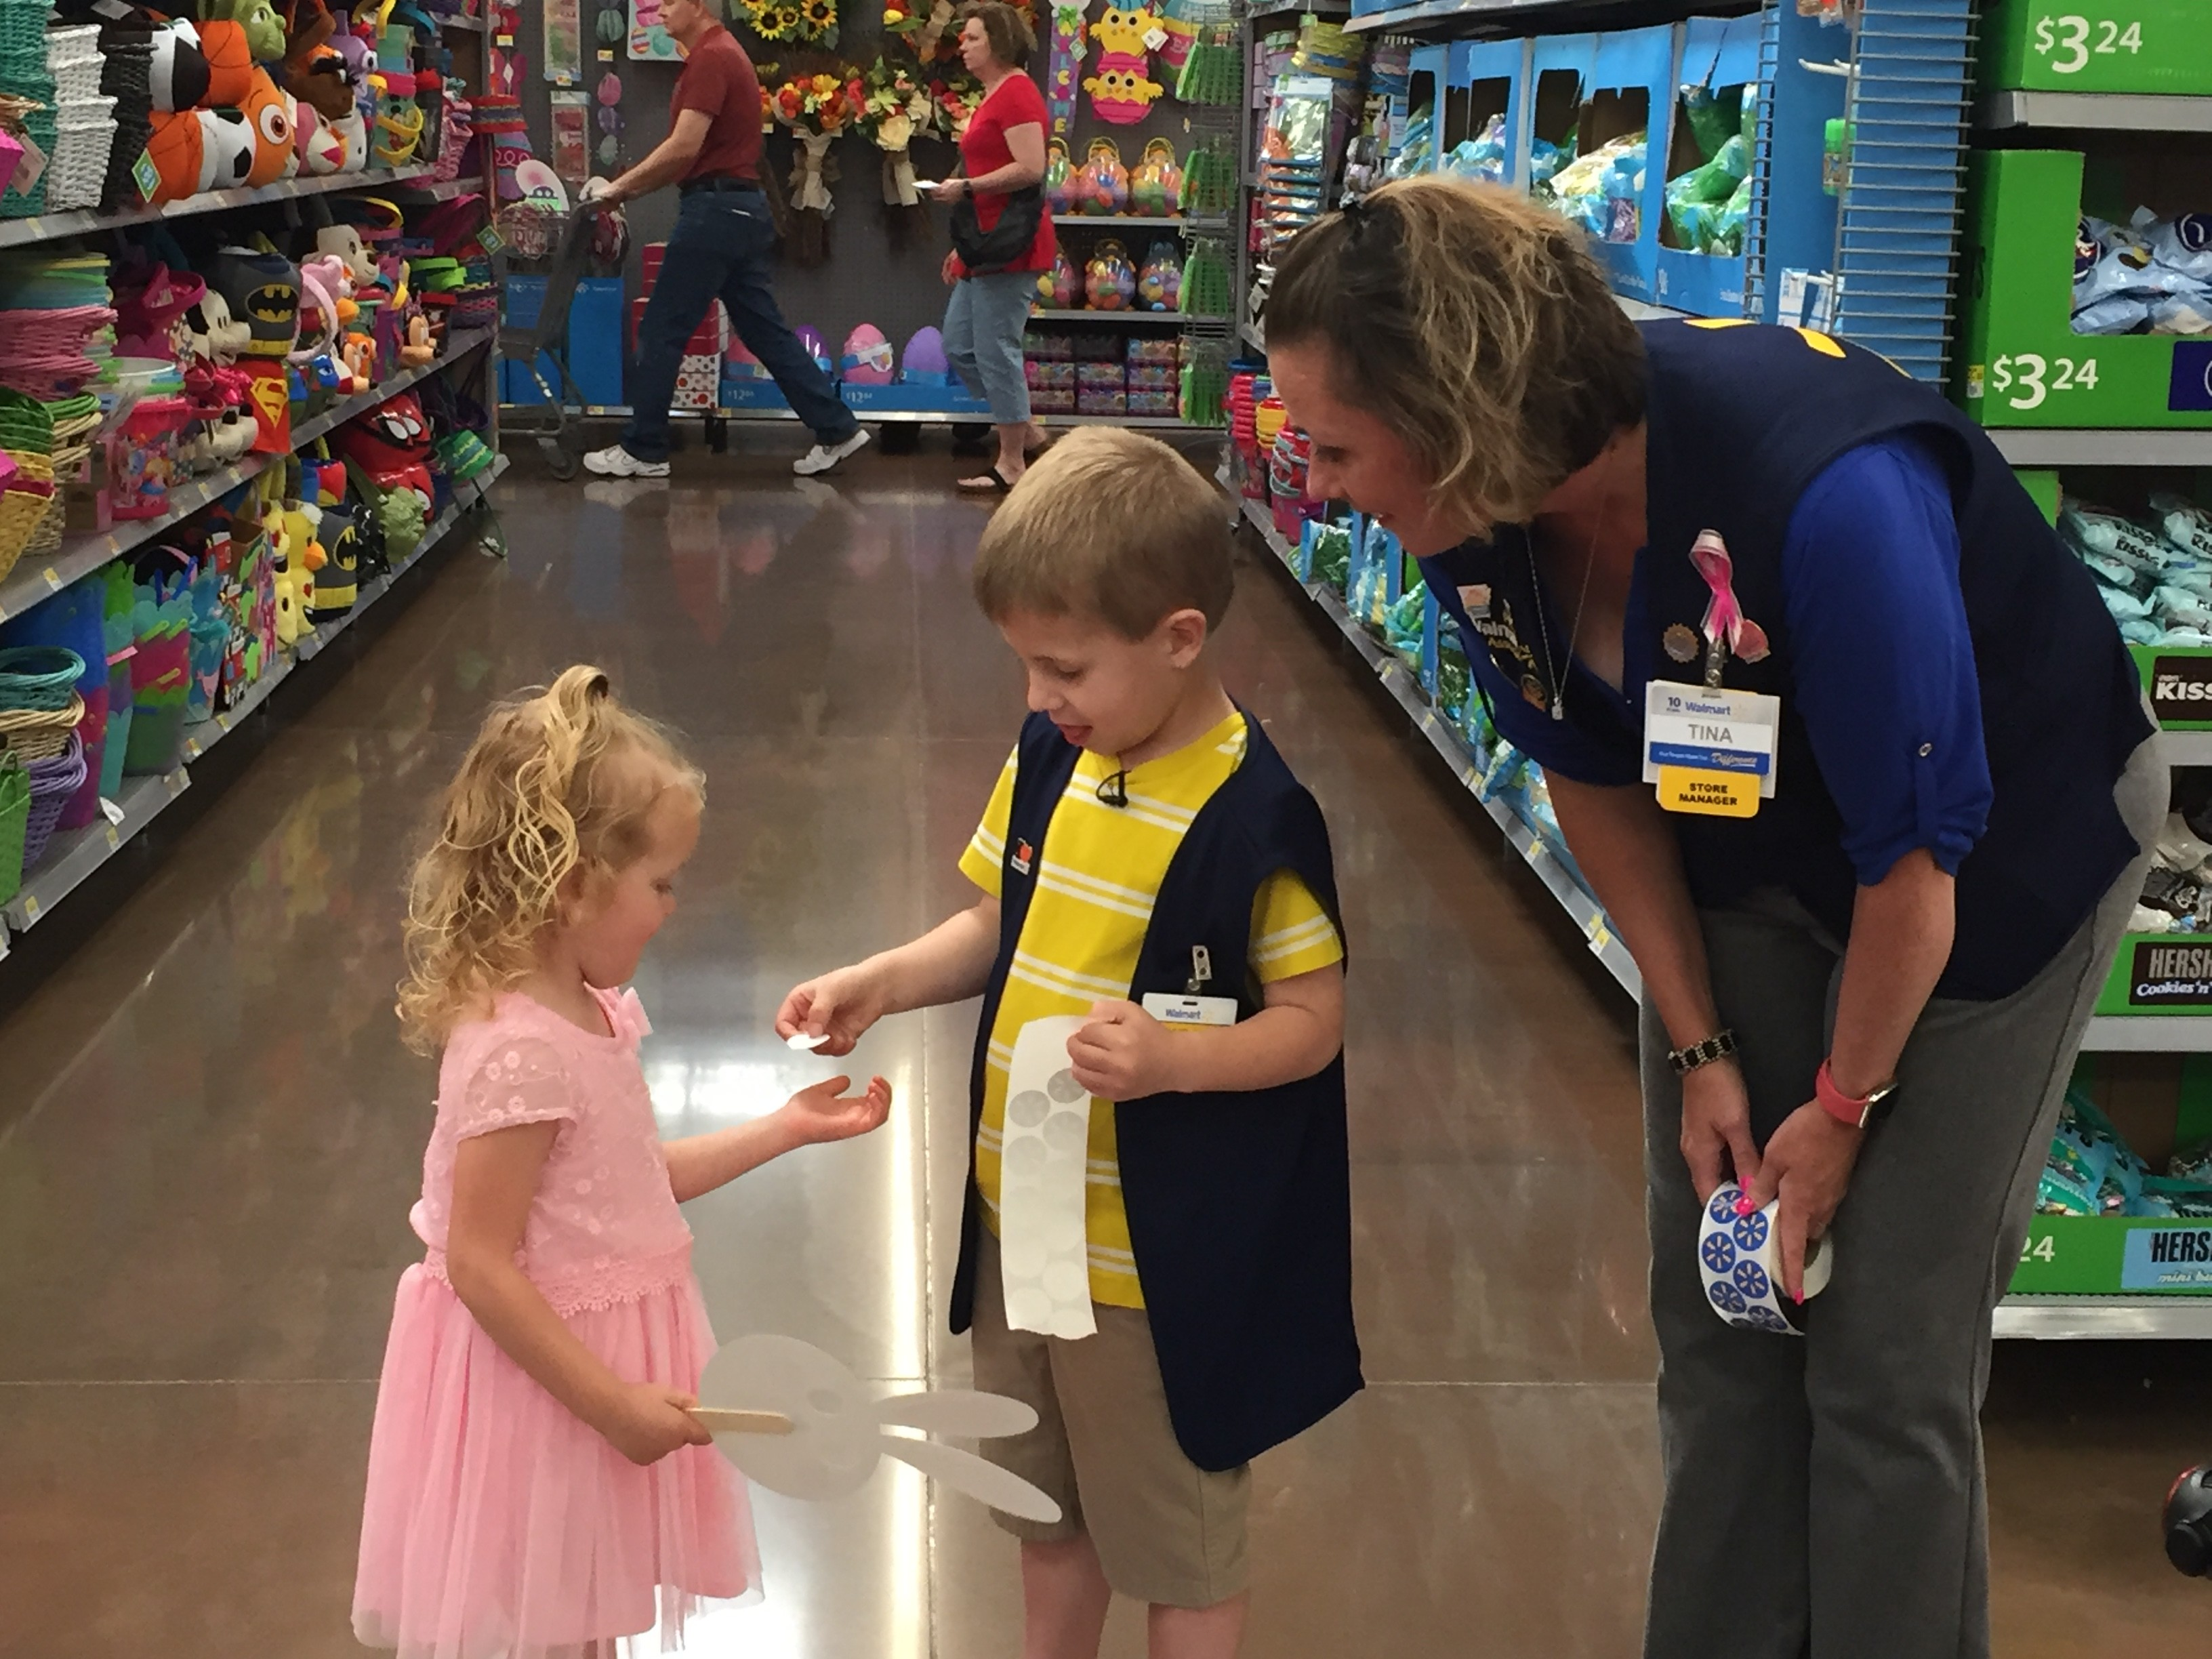 A young boy dressed as an associate for a day helps another young customer